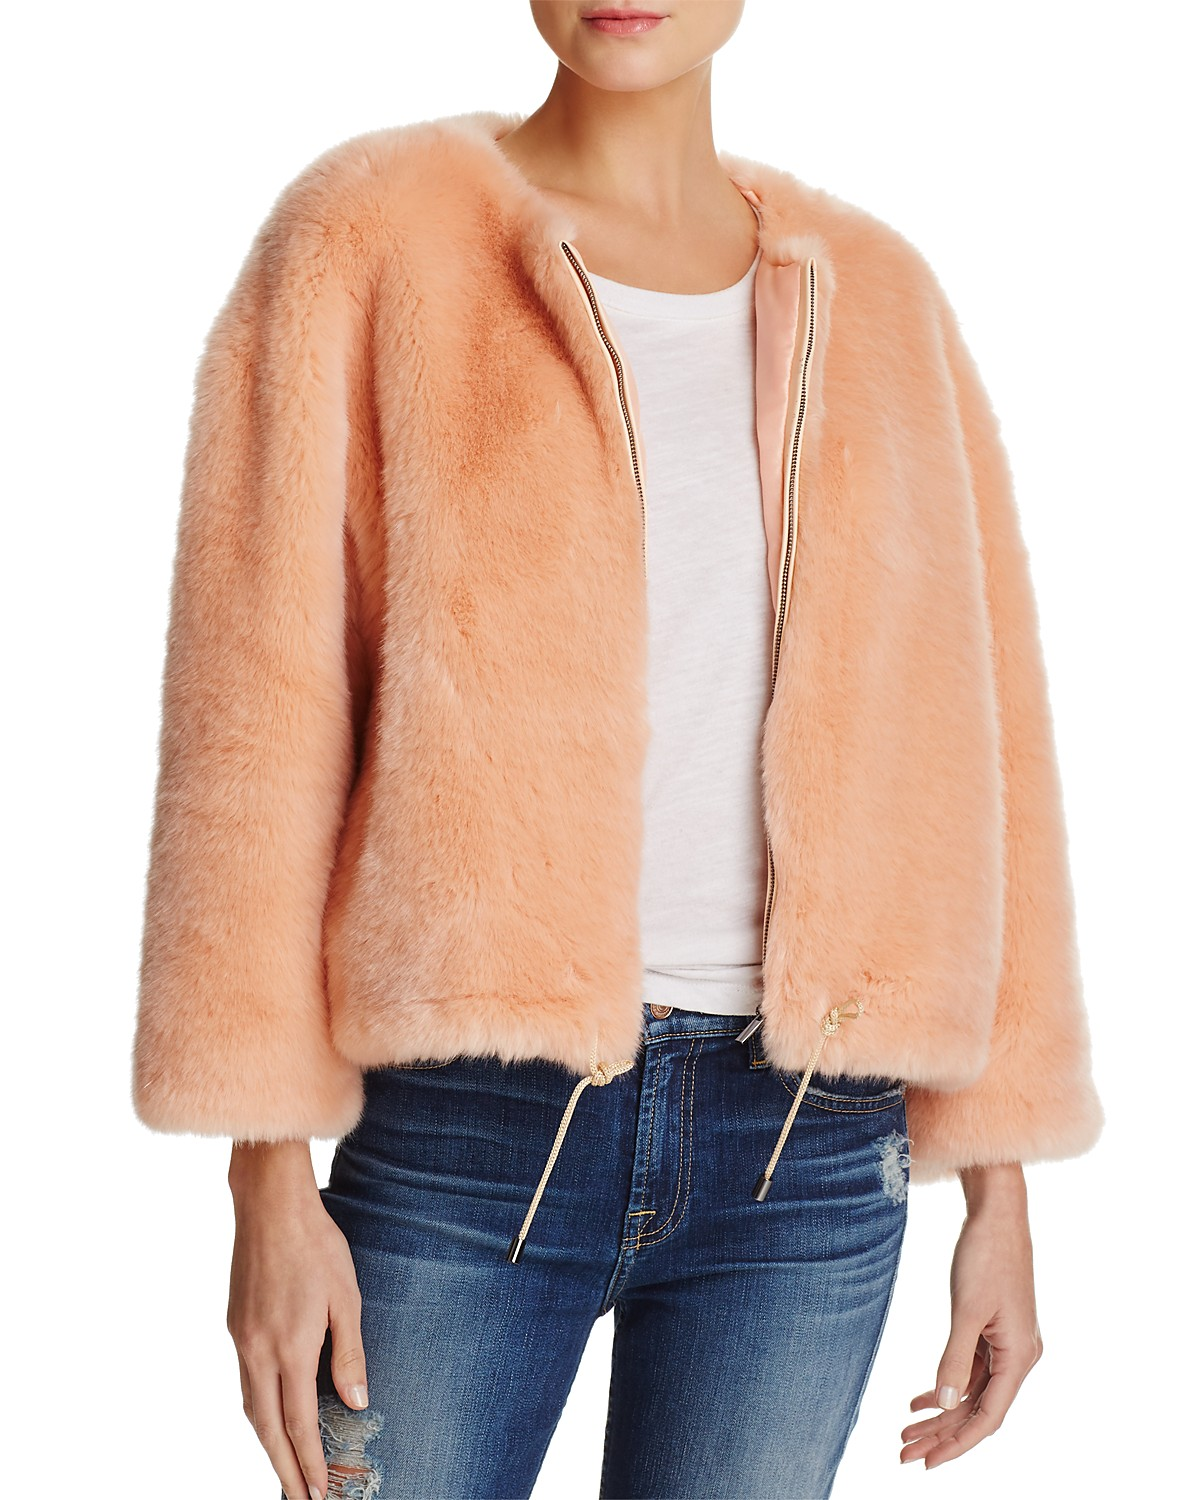 FRENCH CONNECTION Leonie Faux-Fur Drawstring Jacket (orig. $228) NOW $68.40